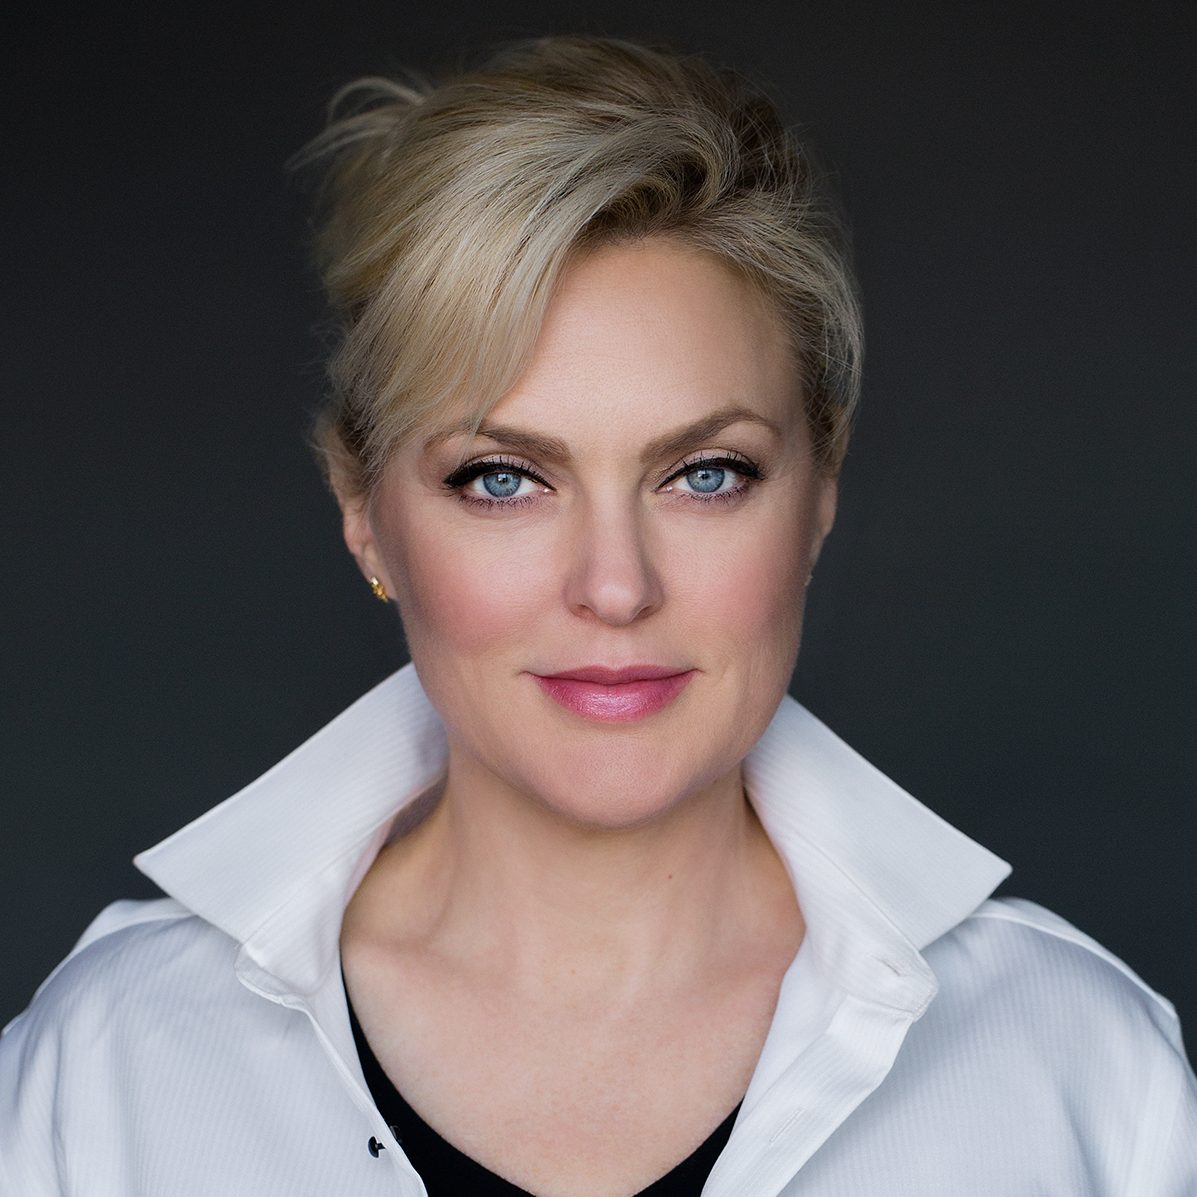 Elaine Hendrix Biography: Is she married? Find out her